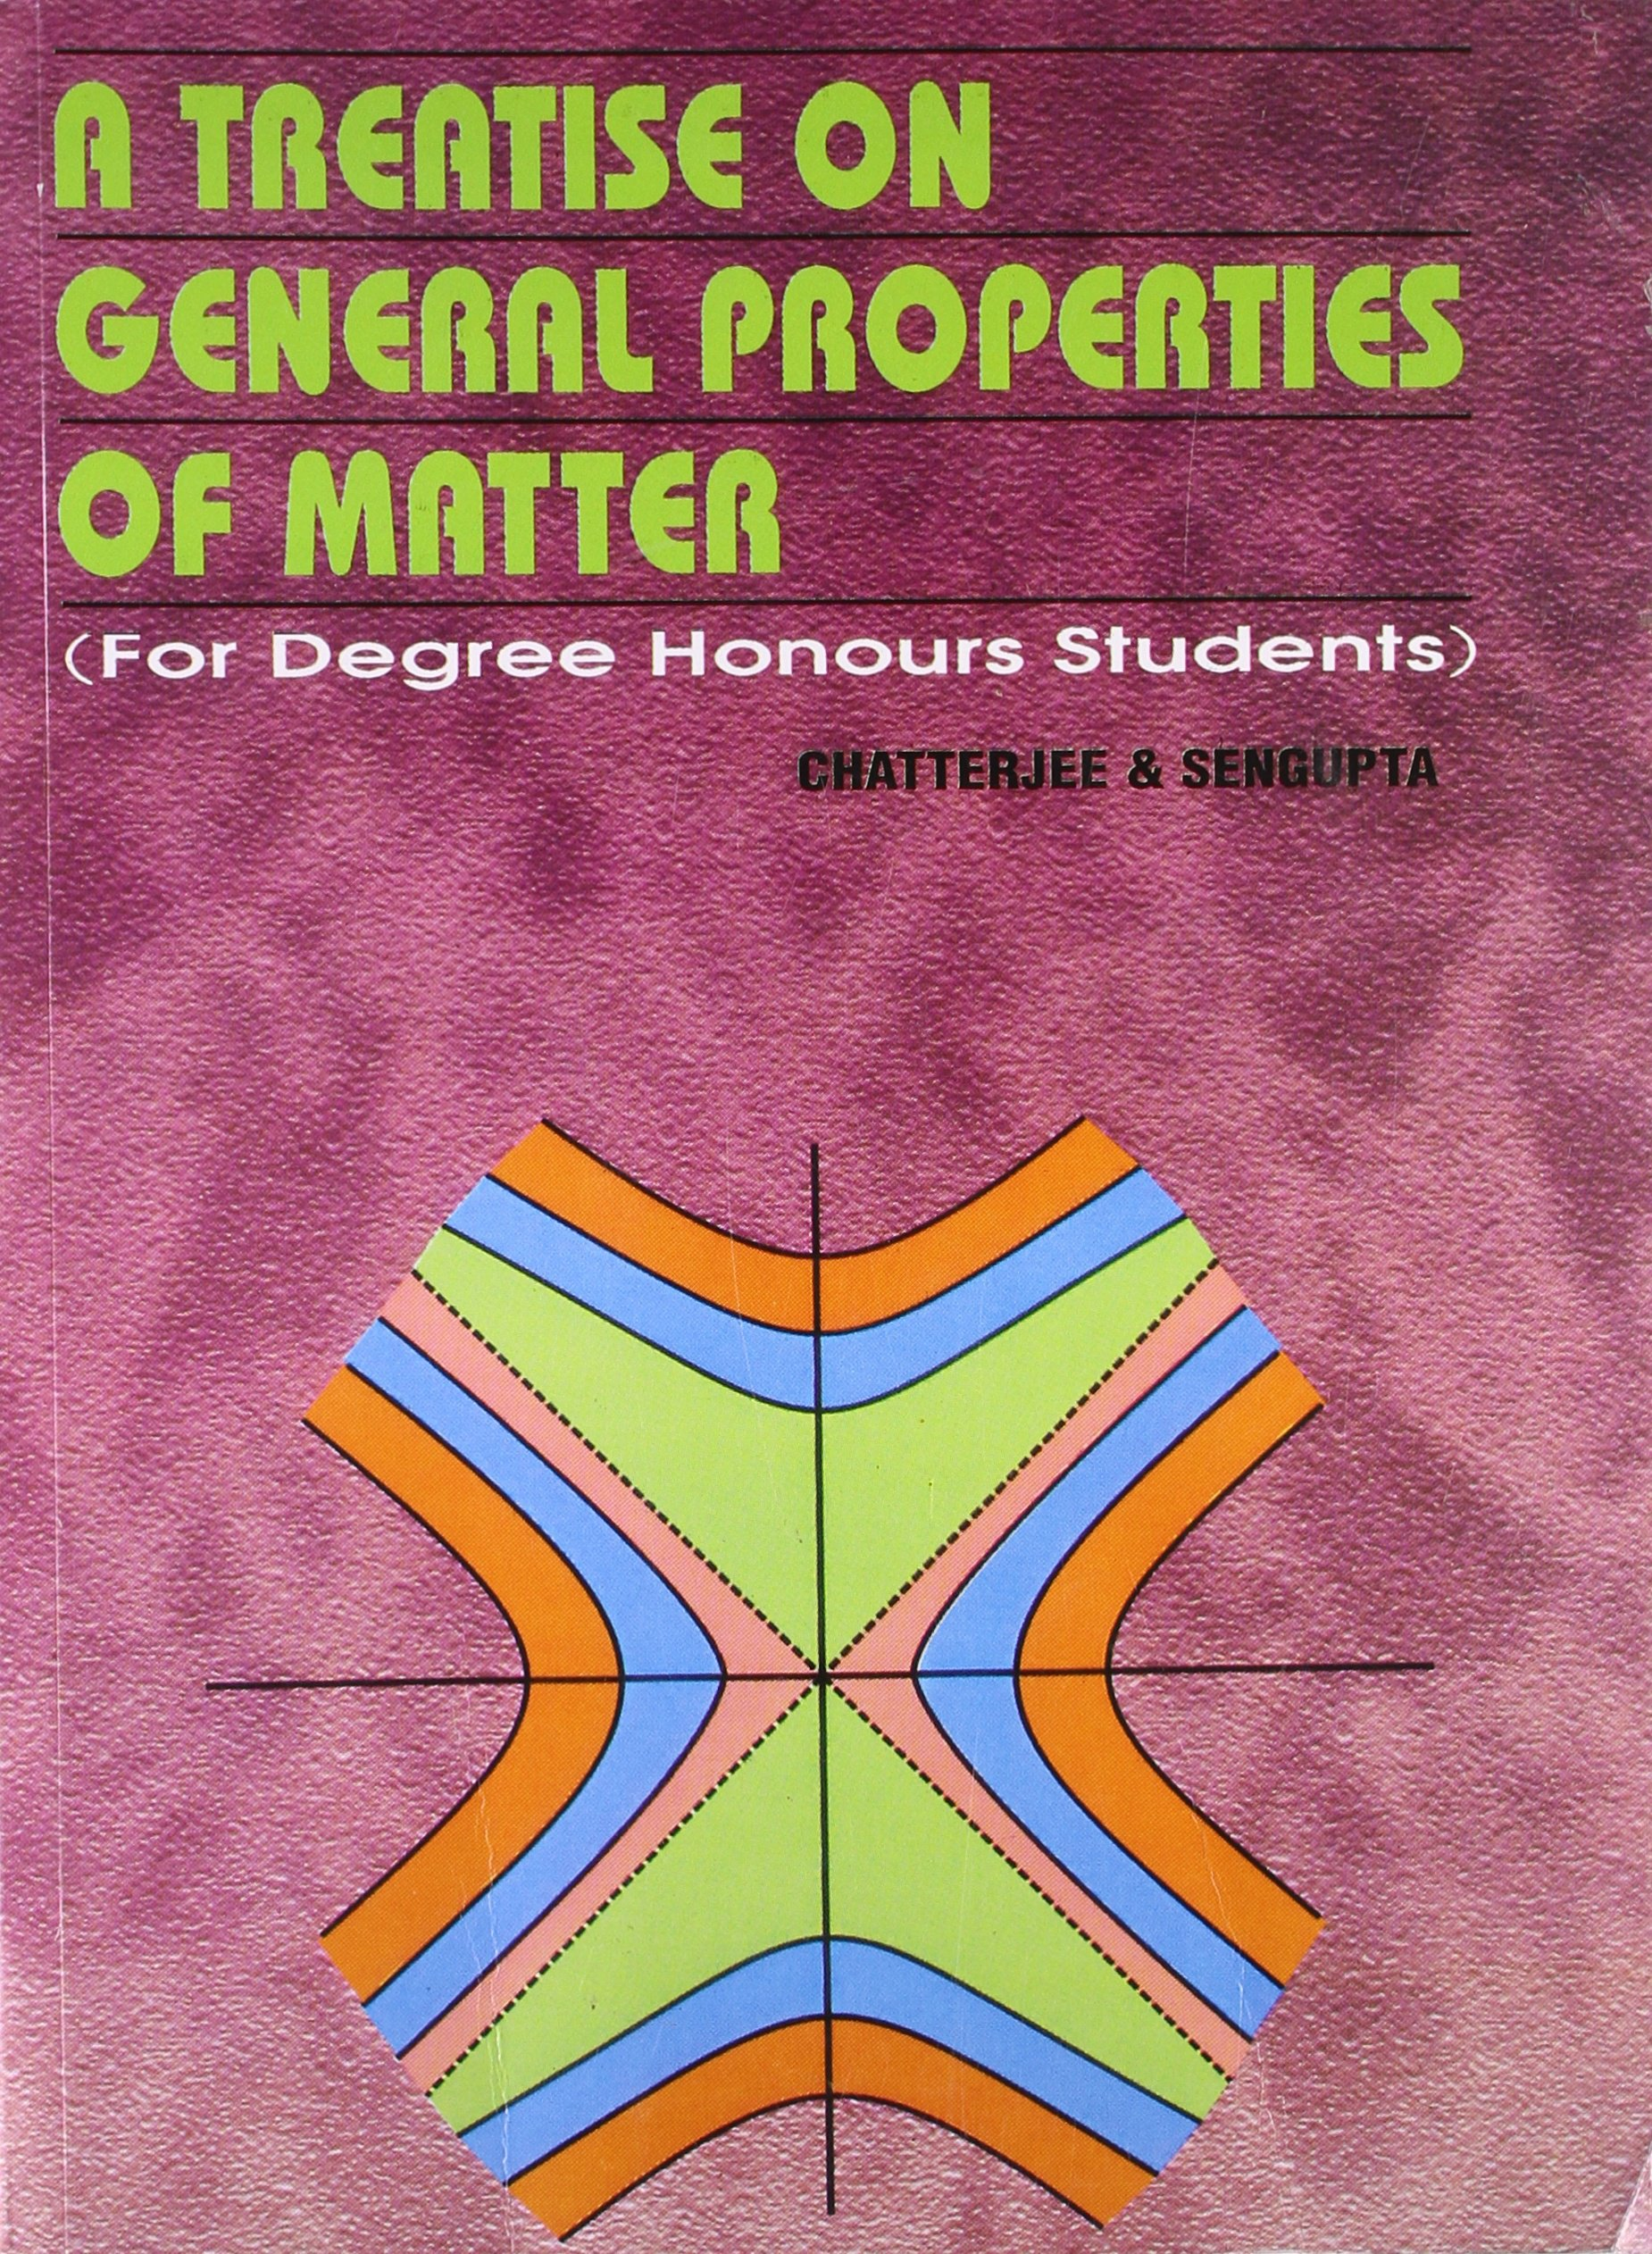 Read Online A Treatise on General Properties of Matter pdf epub